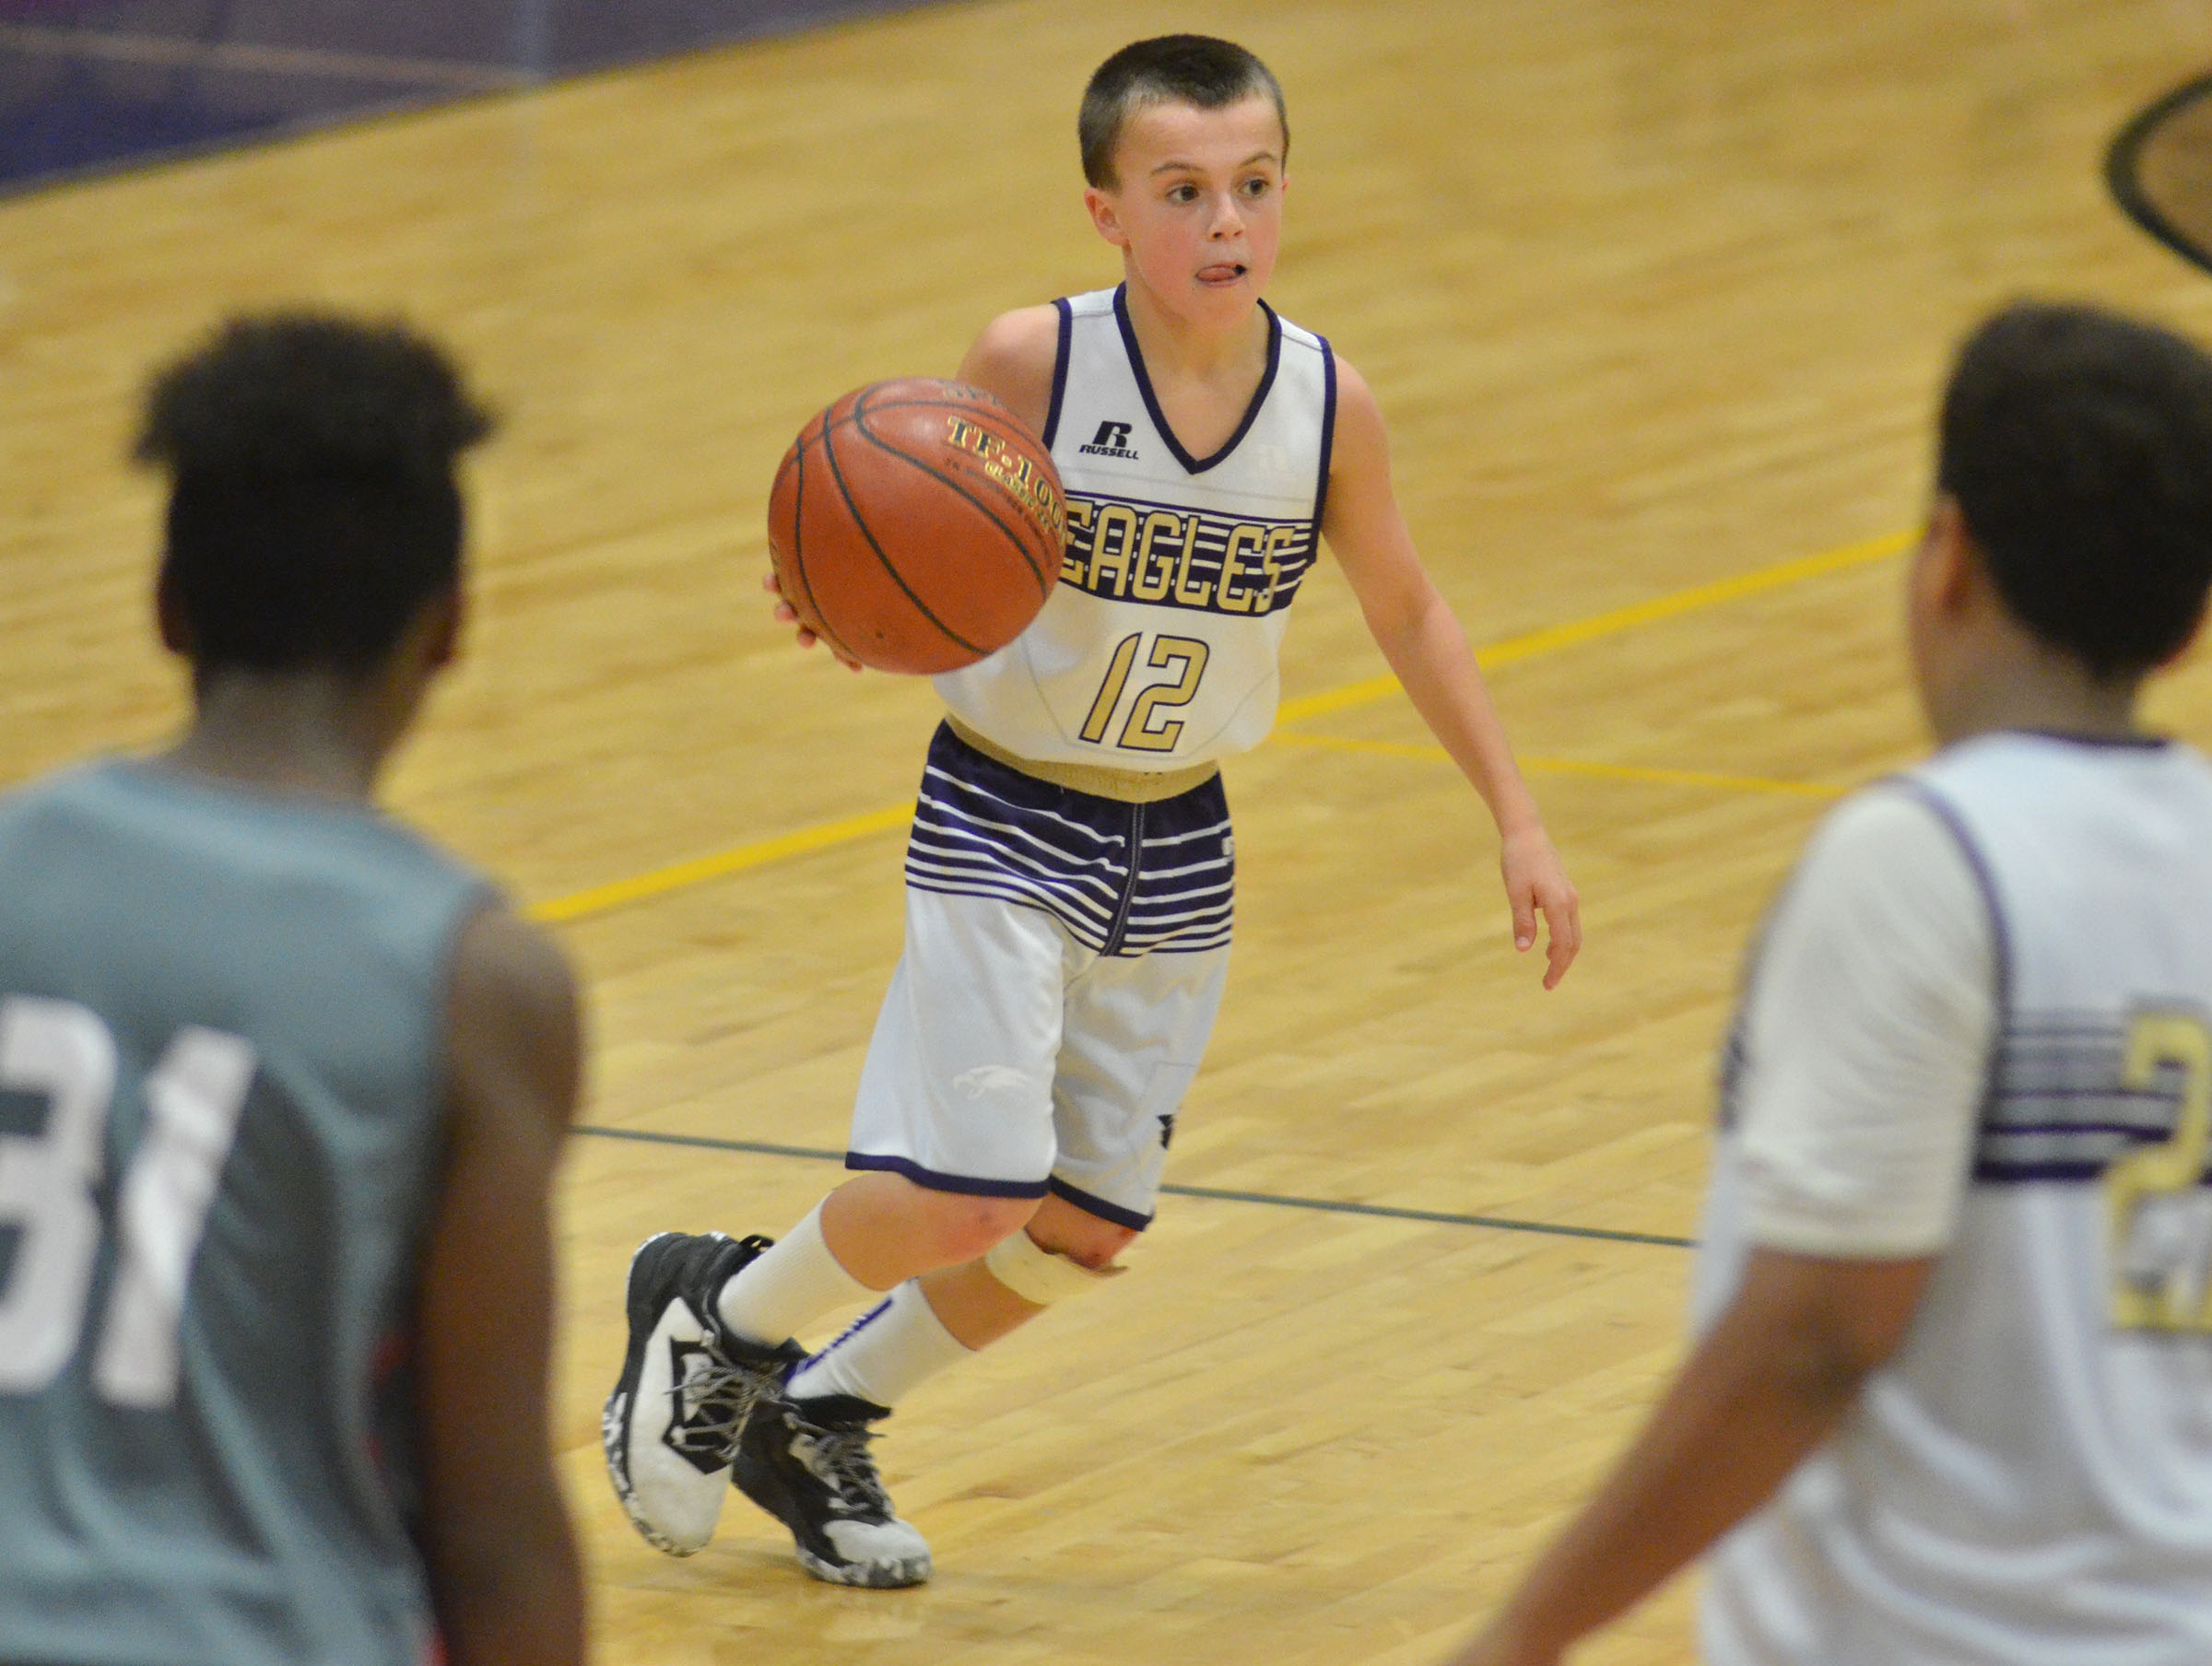 CMS sixth-grader Chase Hord looks to pass.